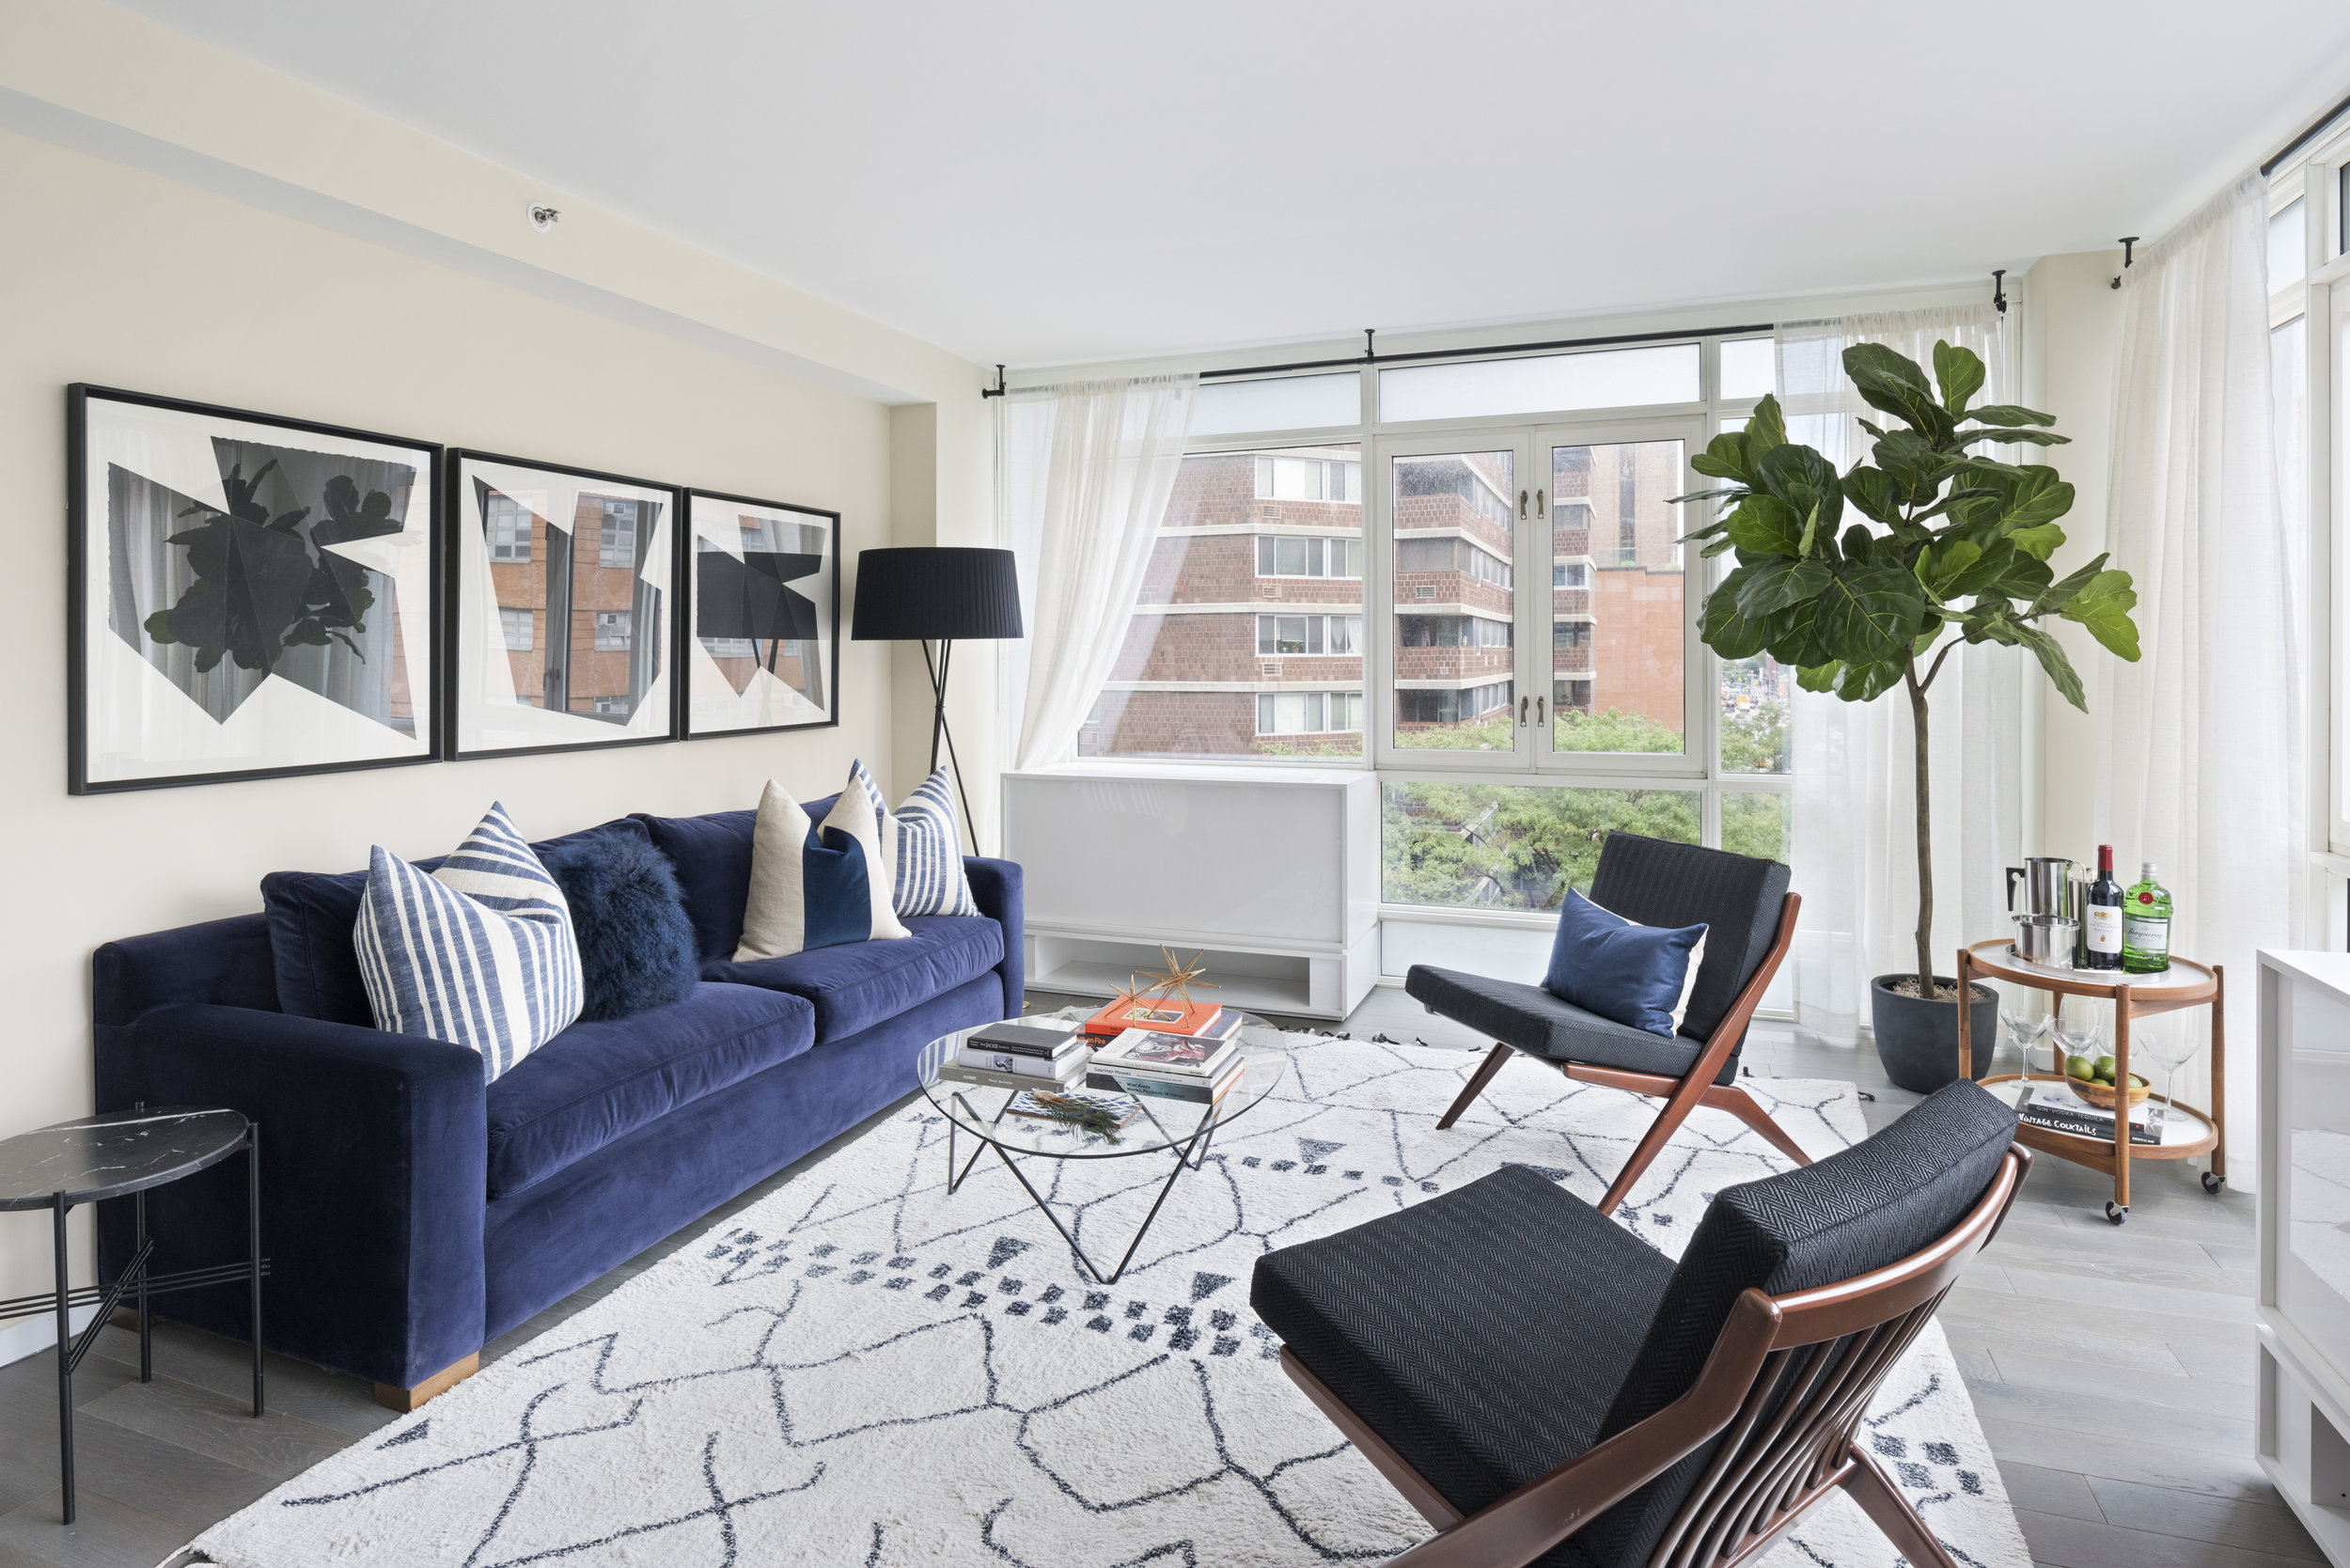 Black and white elements and a neutral rug direct the eye immediately to the blue sofa in this Gramercy Park living space.